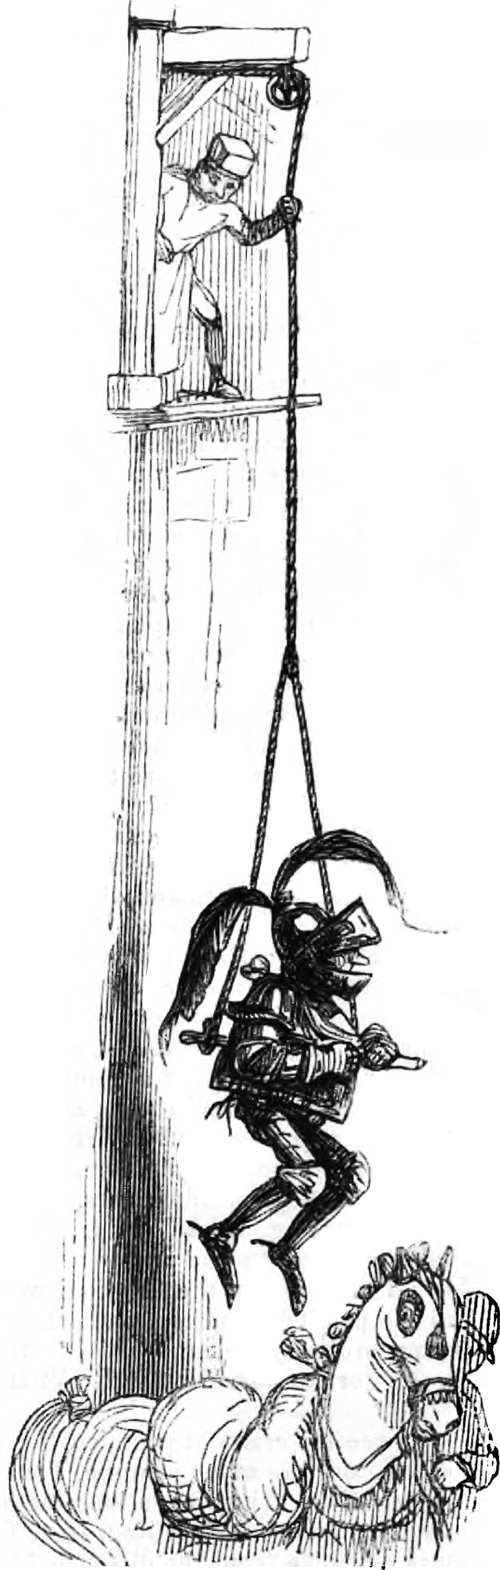 Knight_of_swords_as_hanged_man